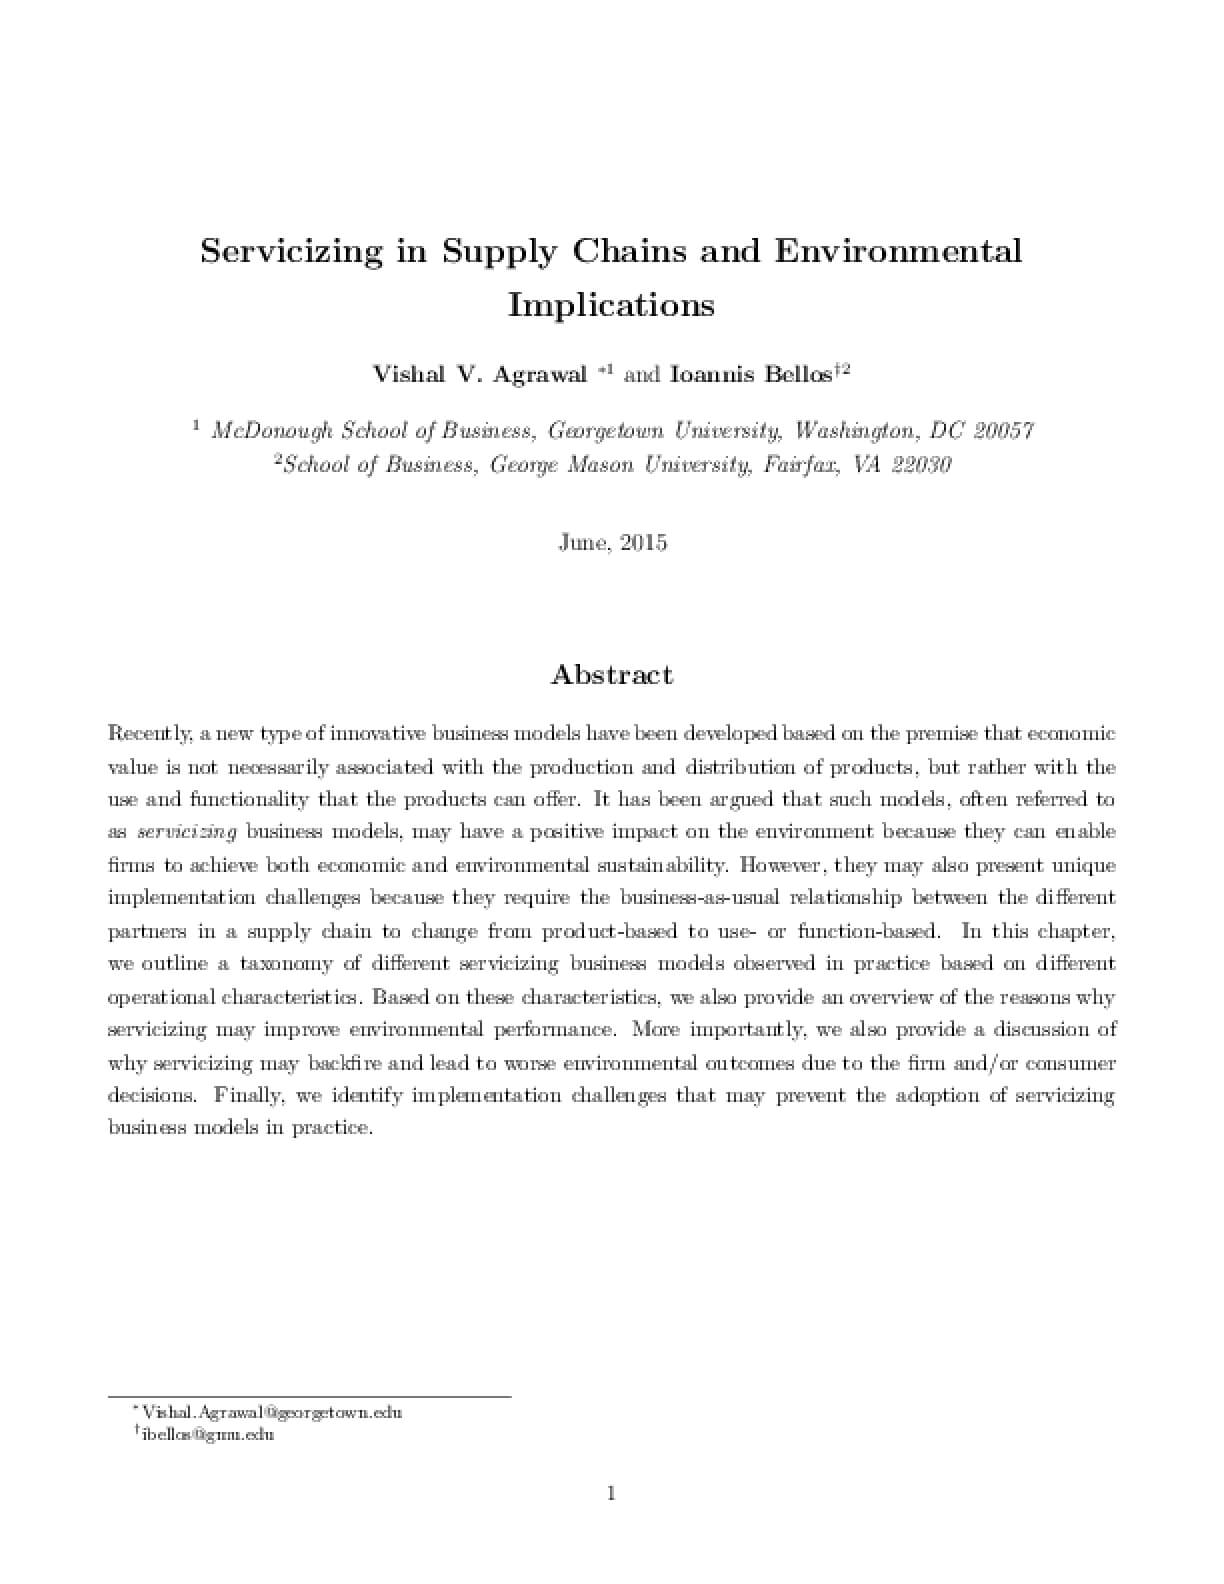 Servicizing in Supply Chains and Environmental Implications